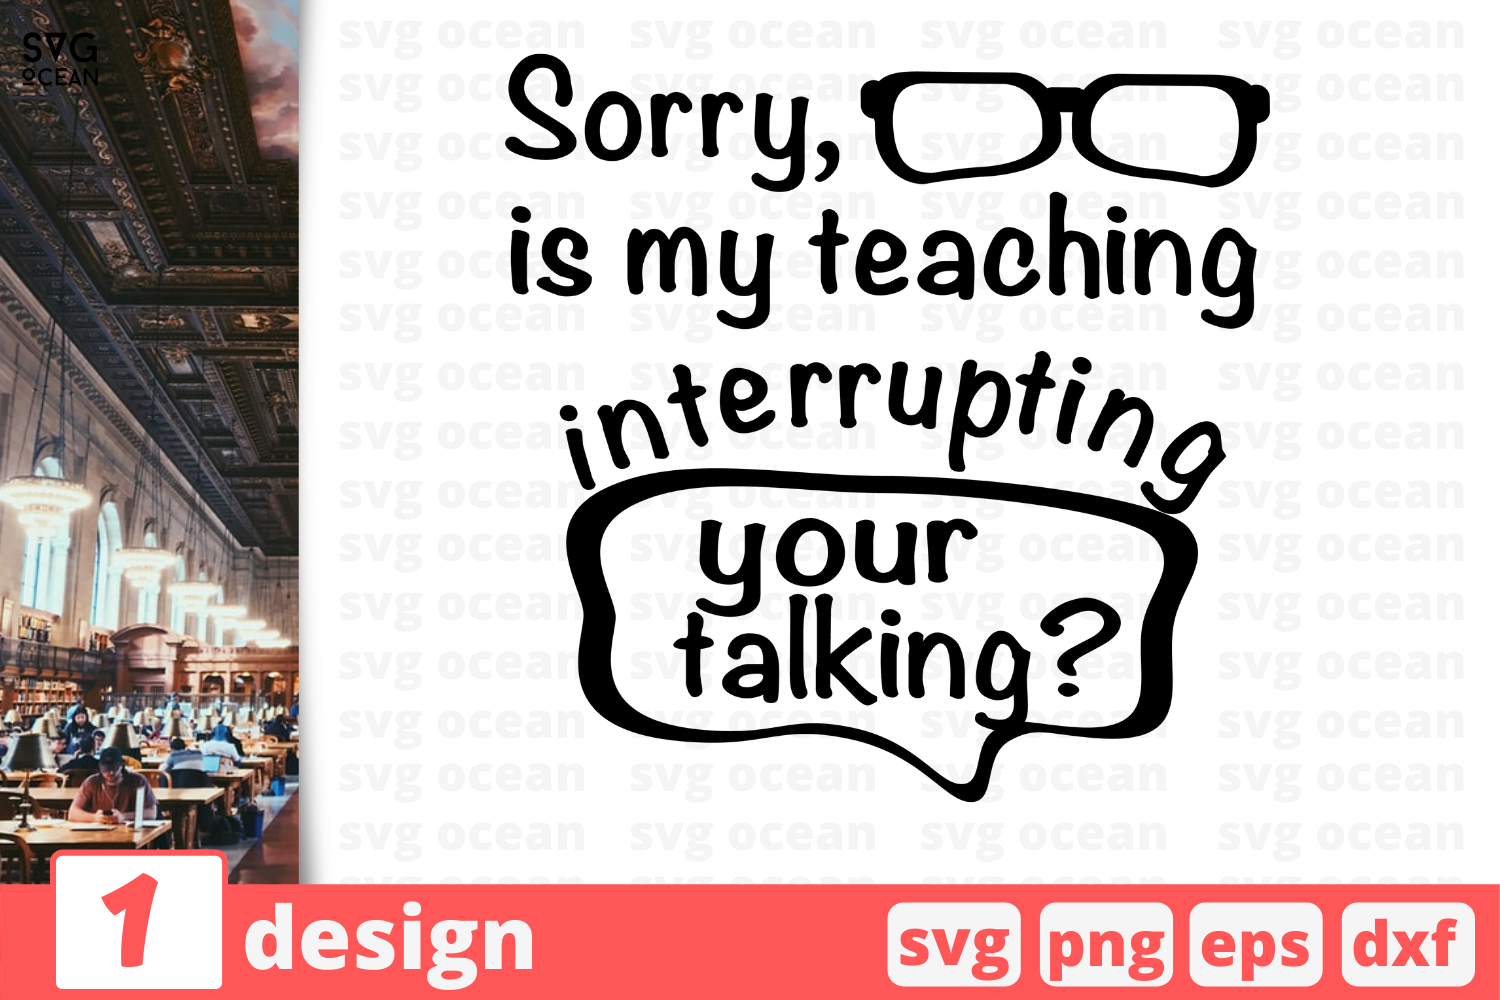 Download Free Your Talking Quote Graphic By Svgocean Creative Fabrica for Cricut Explore, Silhouette and other cutting machines.